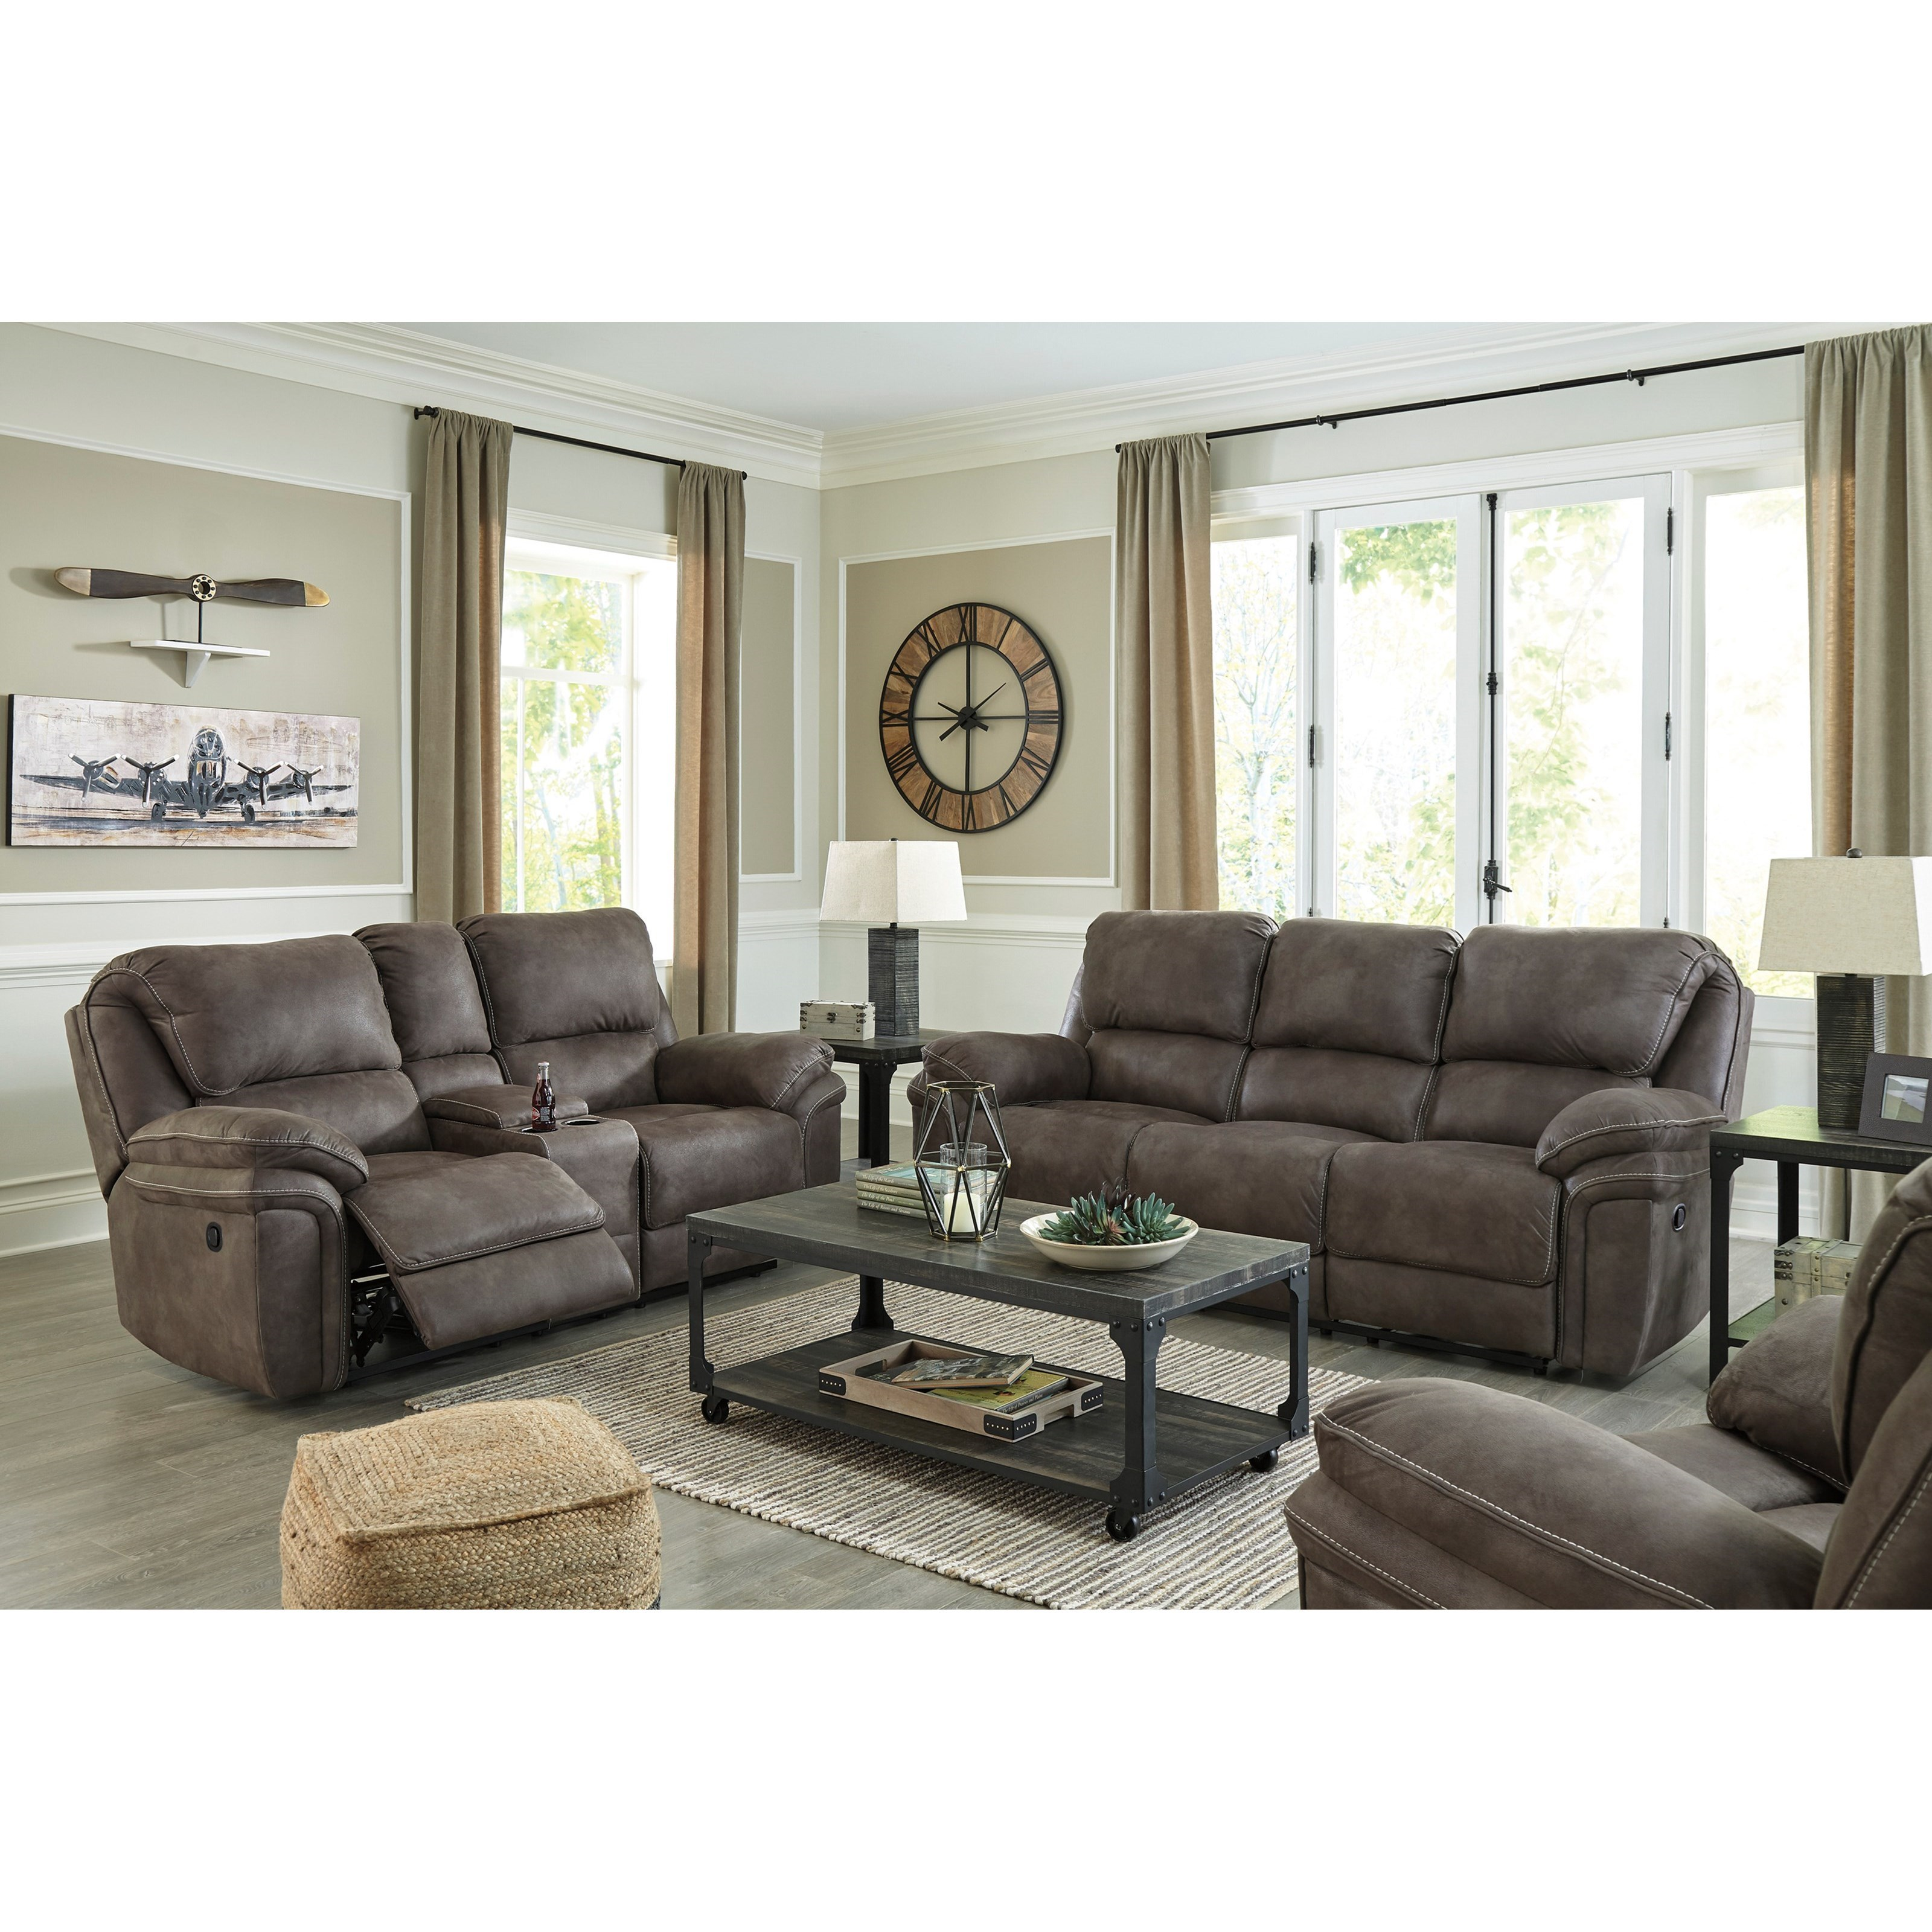 Trementon Reclining Living Room Group by Benchcraft at Value City Furniture